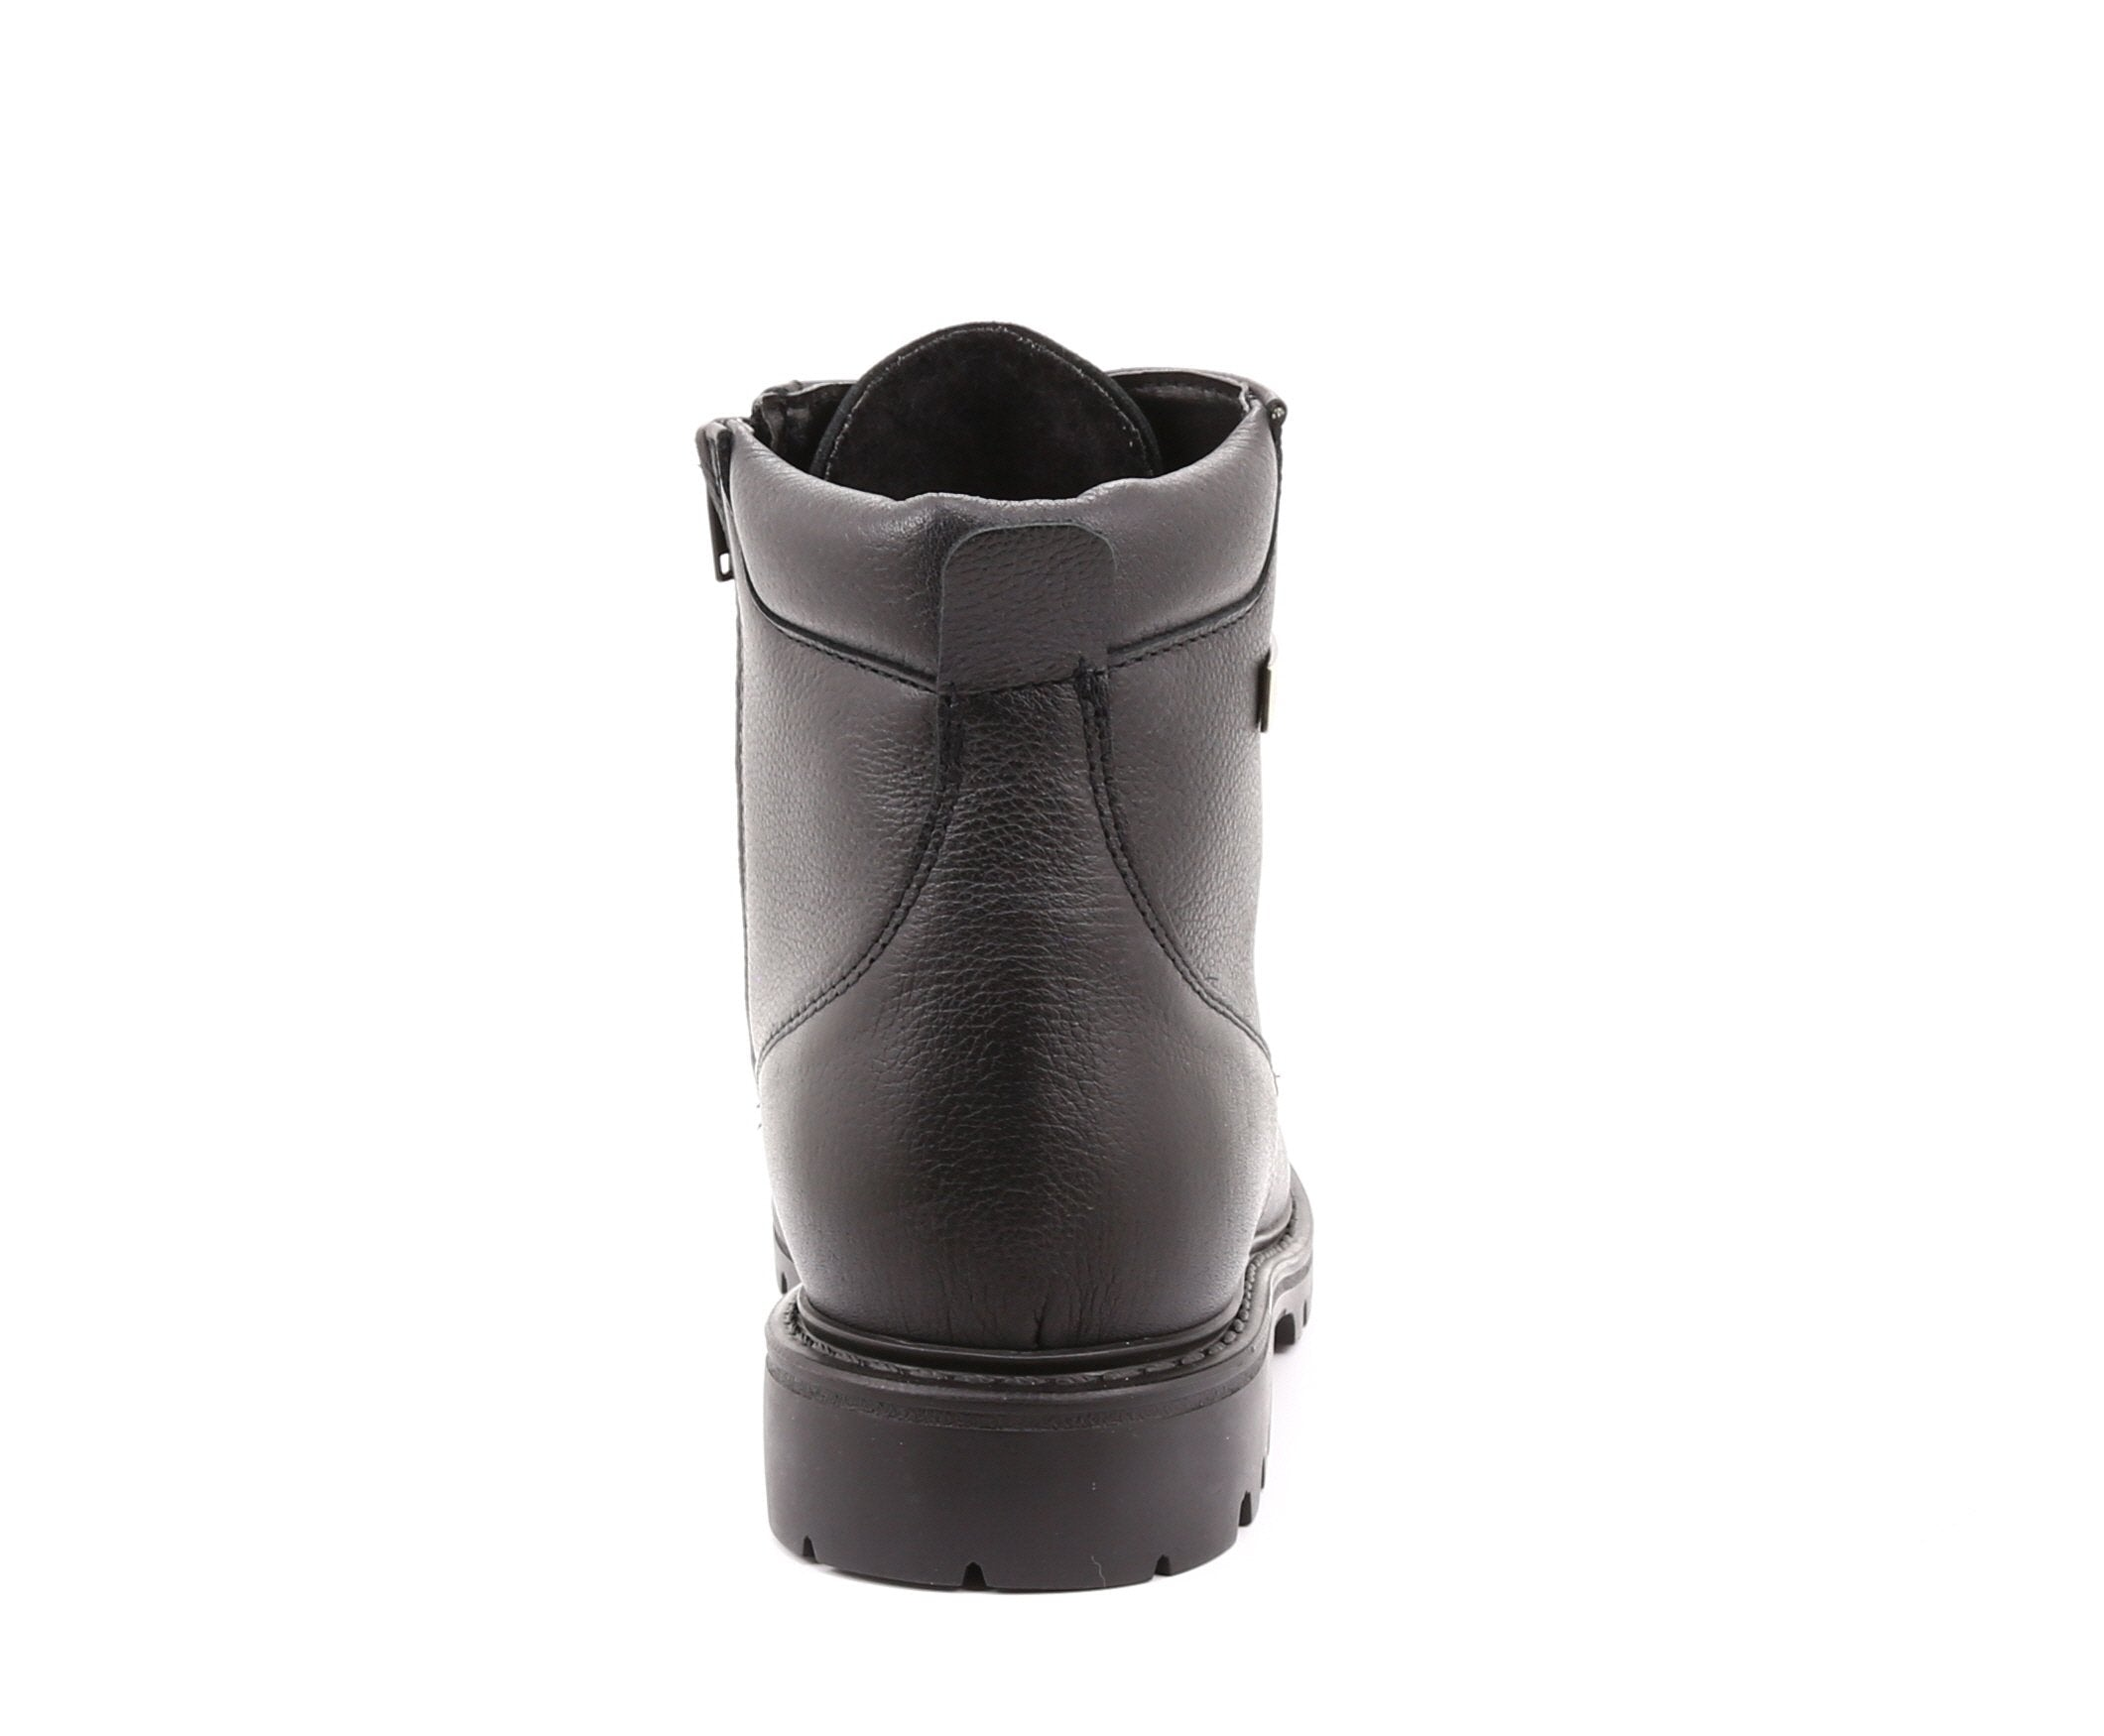 ALFRED C.® James 9915 Men's Winter Boot with Retractable Cleats - Alfred Cloutier Ltd. - Canada